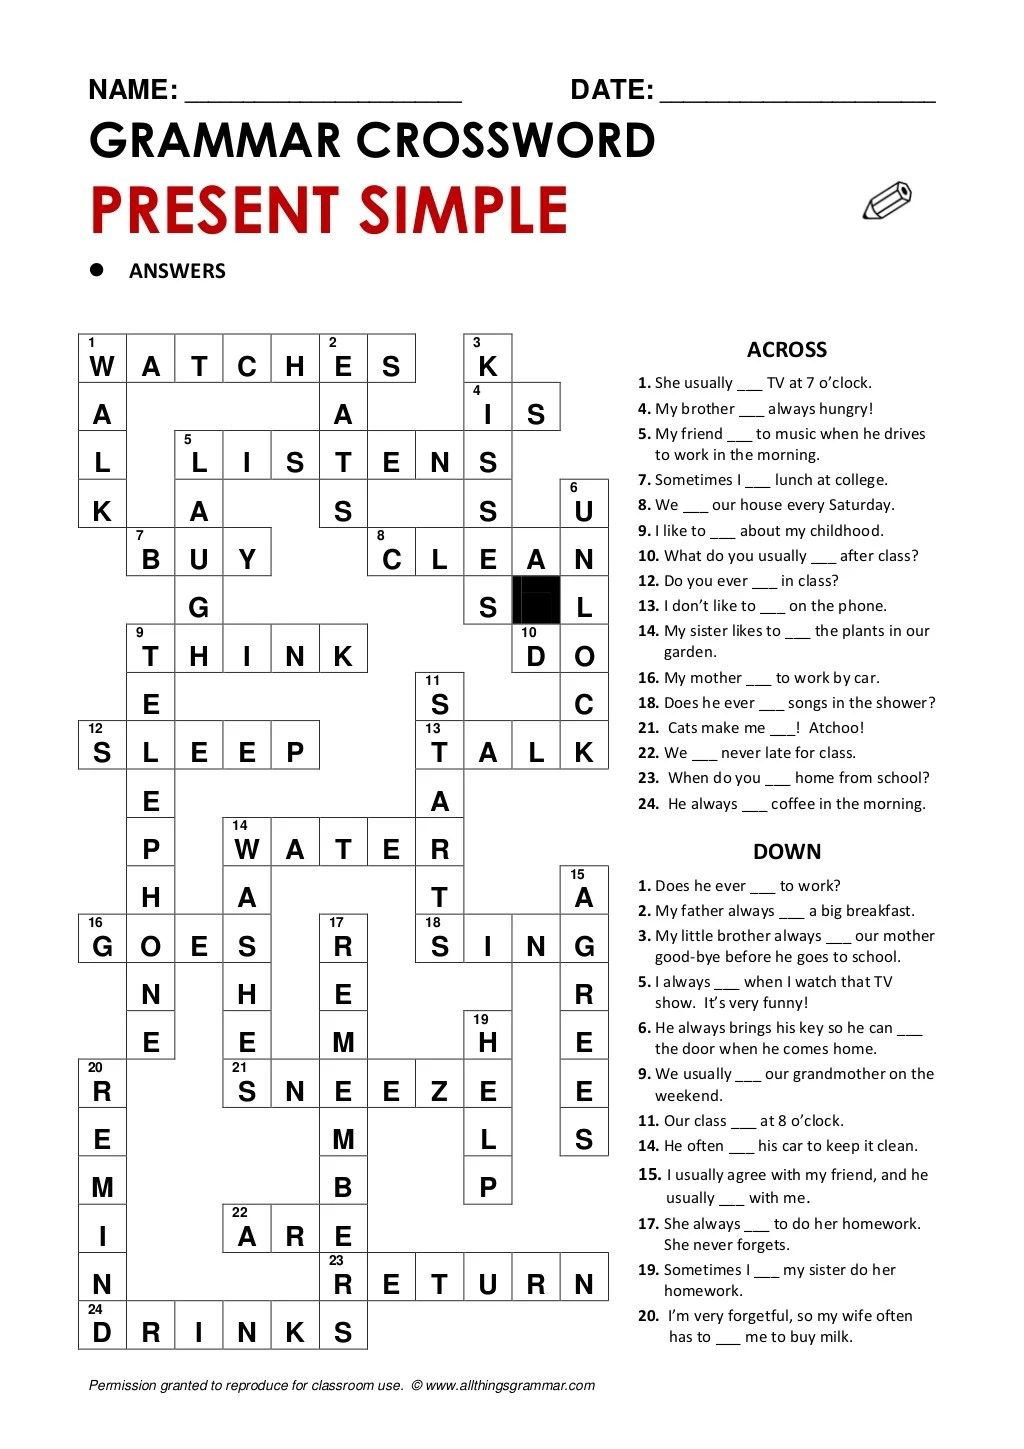 Crossword Presentsimple